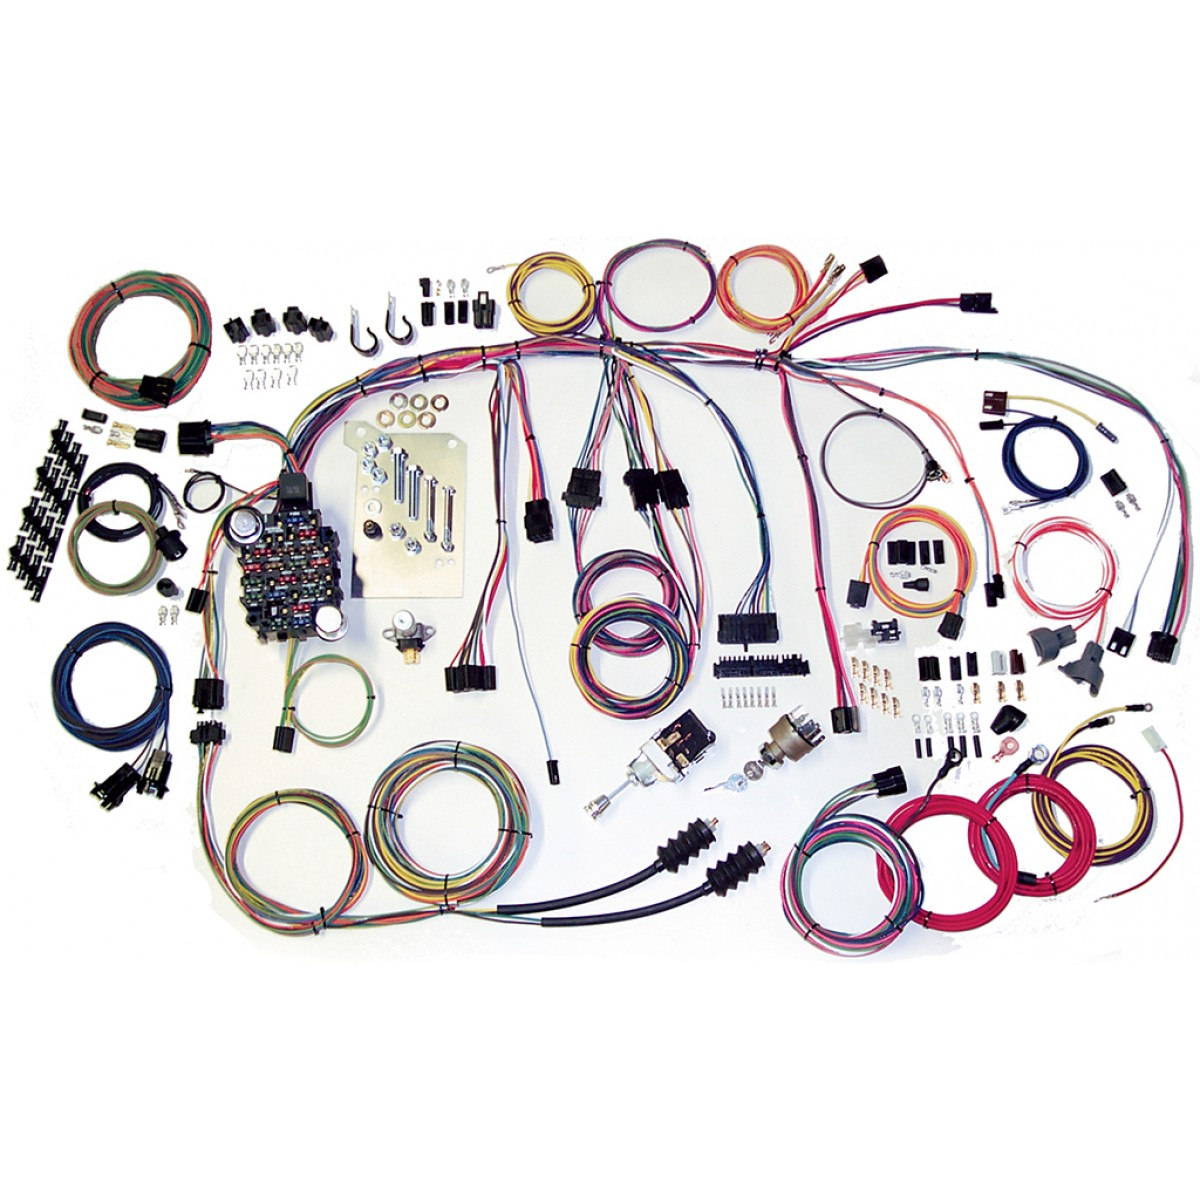 60 66 chevy truck wiring harness kit 1960 1966 chevy truck part 500560 chevy c10 c20 wiring harness chevy c10 wiring harness complete wiring harness kit 1960 1966 chevy wiring harness at bakdesigns.co